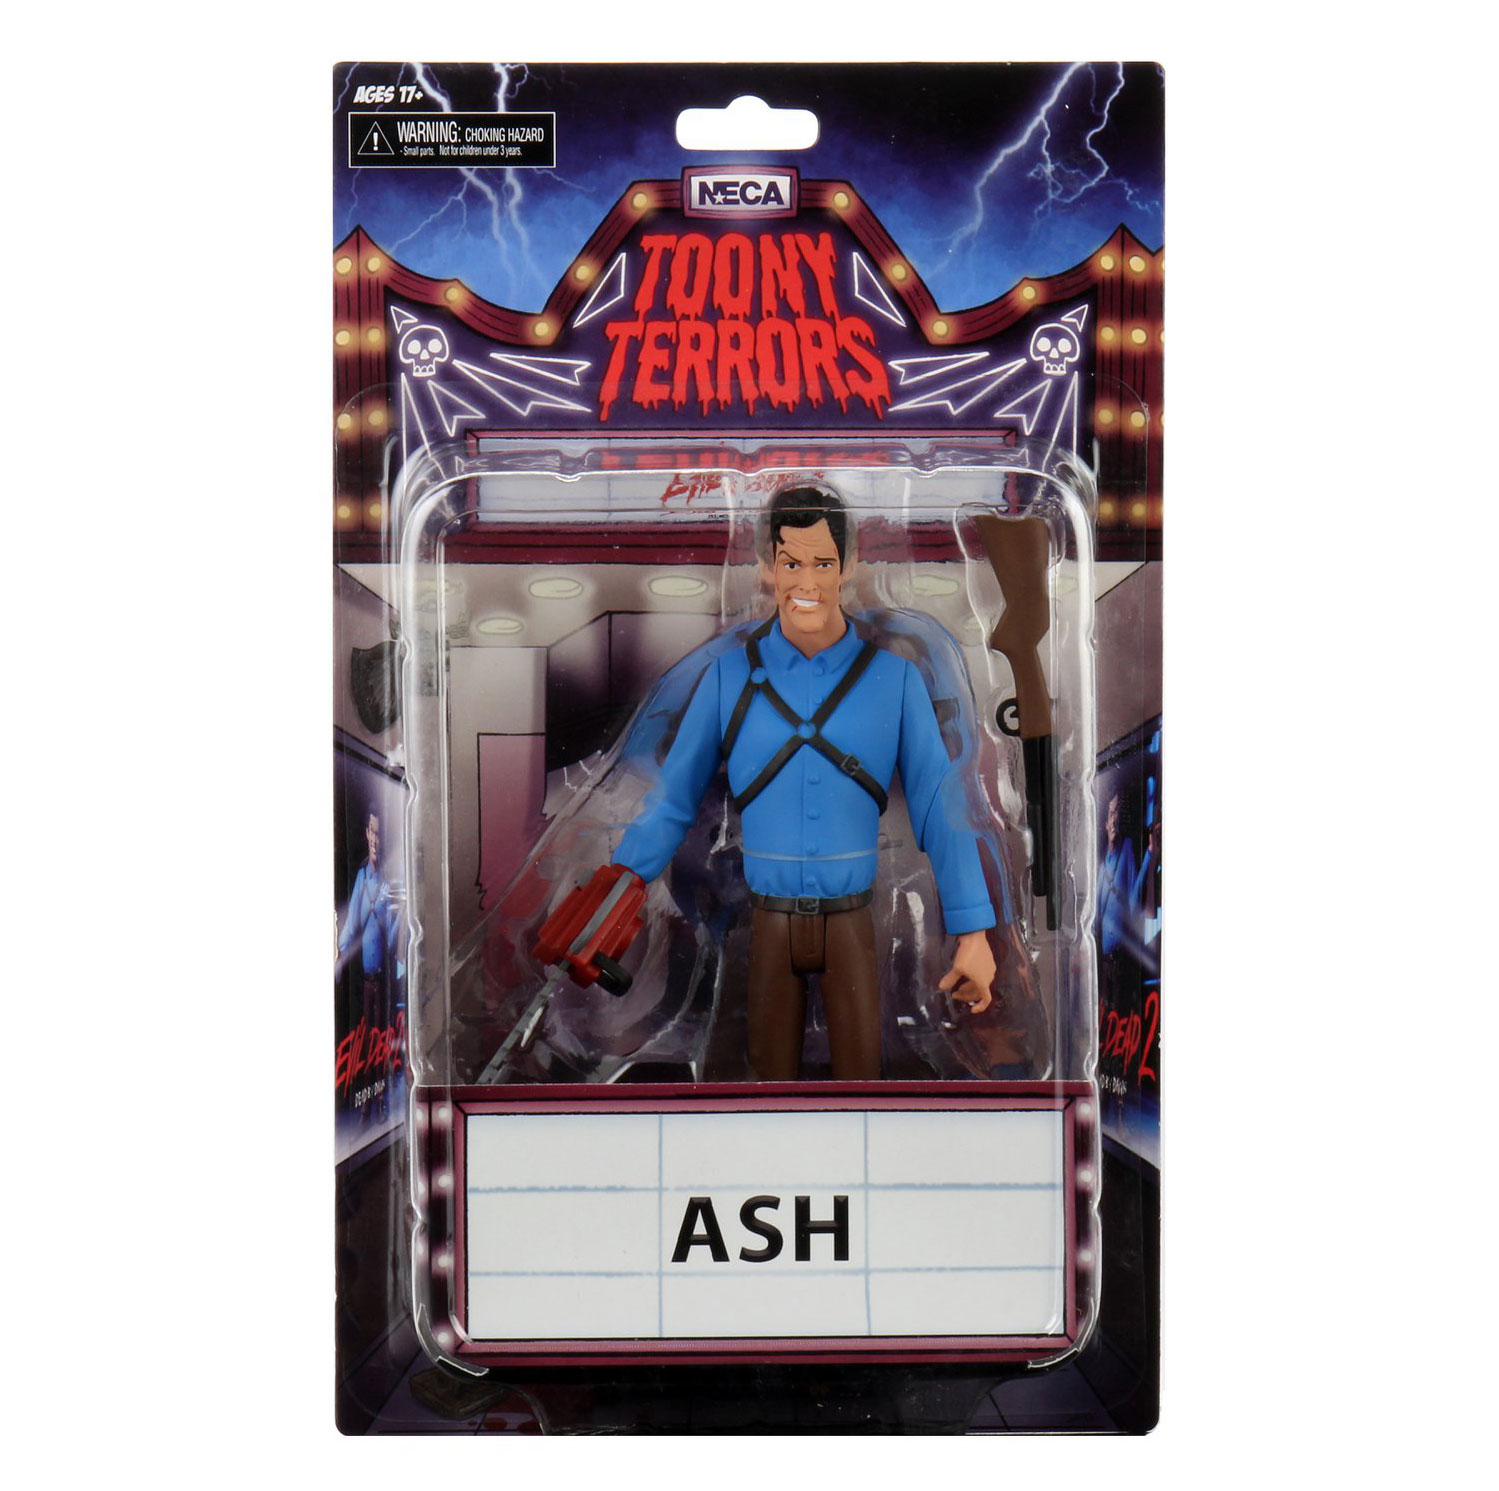 neca-toony-terrors-ash-action-figure-packaging-1